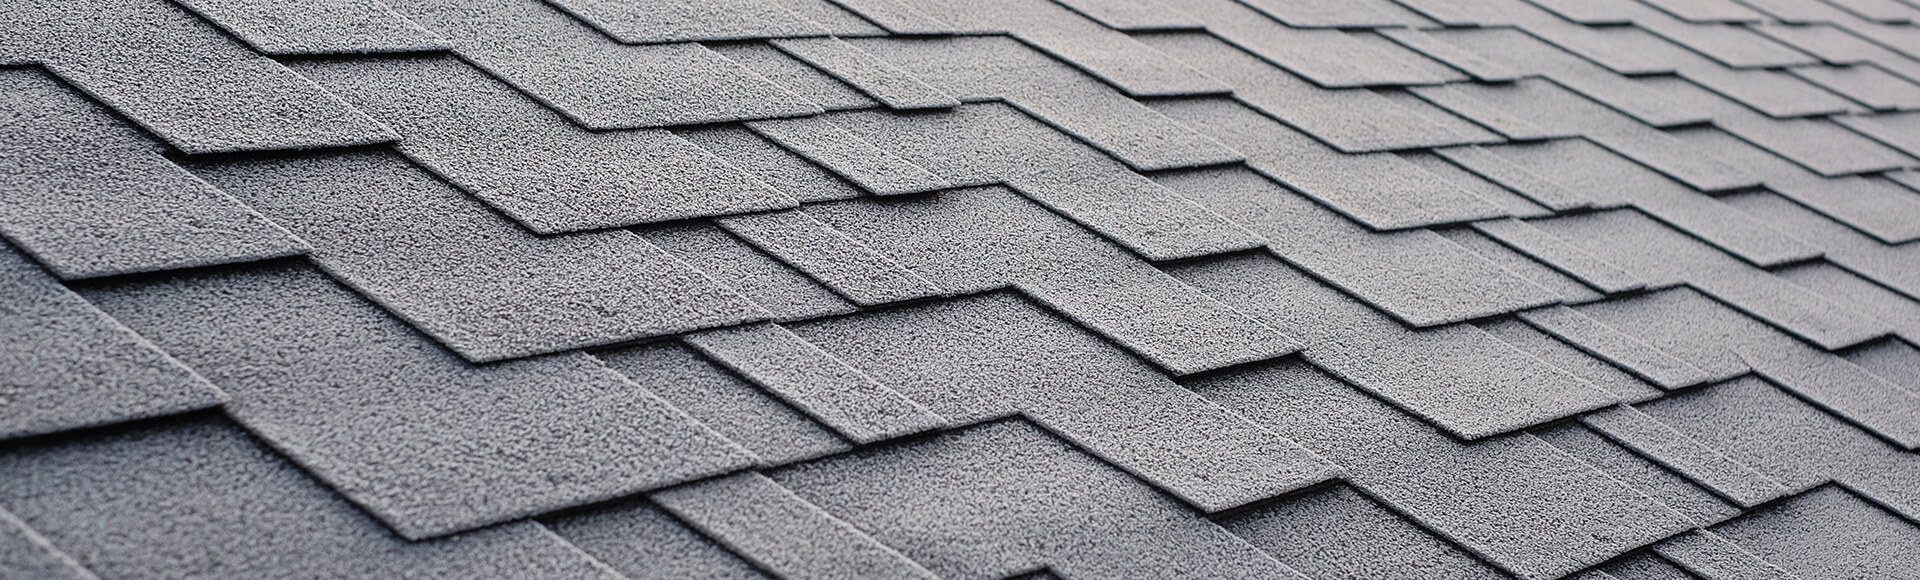 Hamilton Roofing Company, Roofing Contractor and Roofer